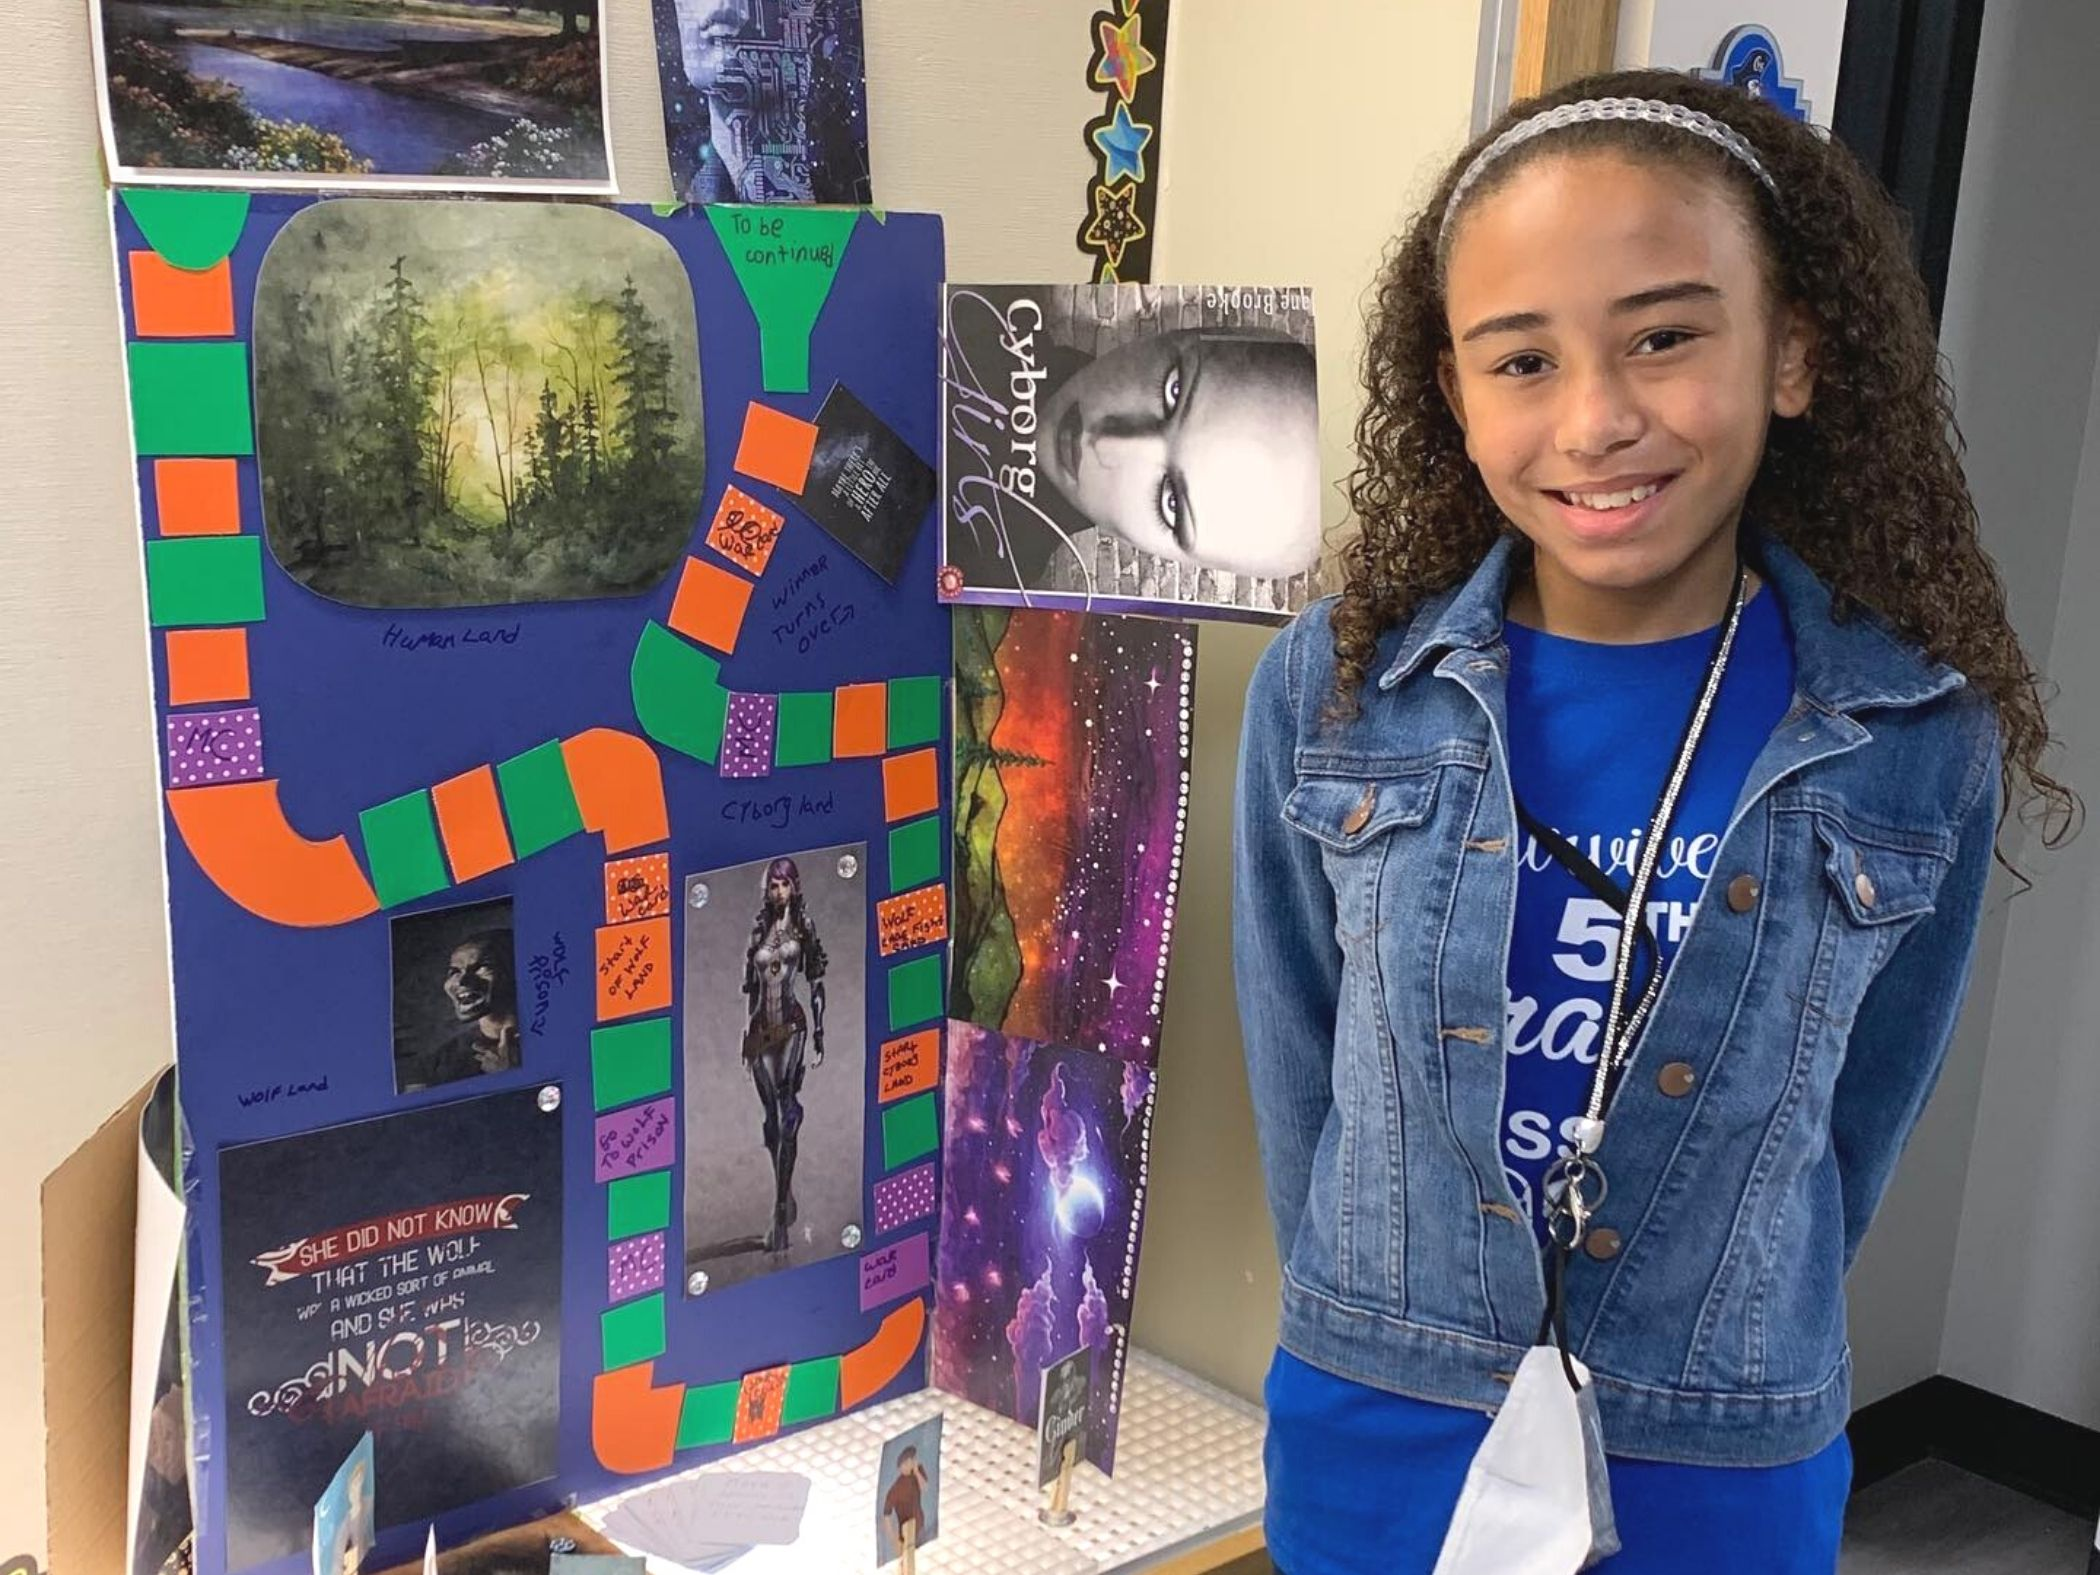 Student posing next to her project